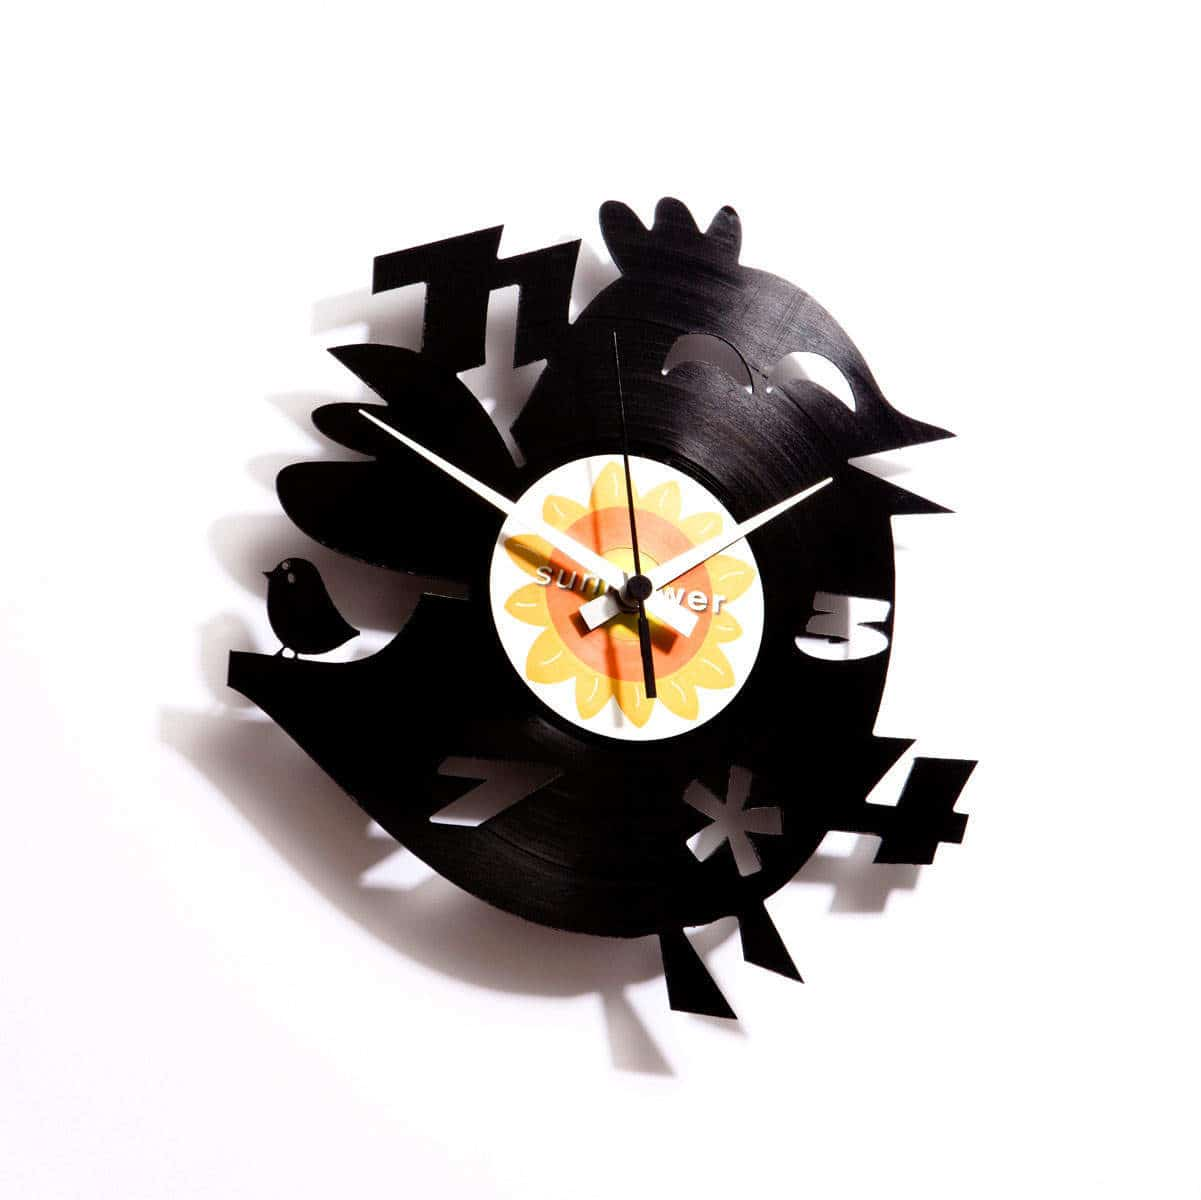 TWITTER'S DUMB BROTHER vinyl record clock